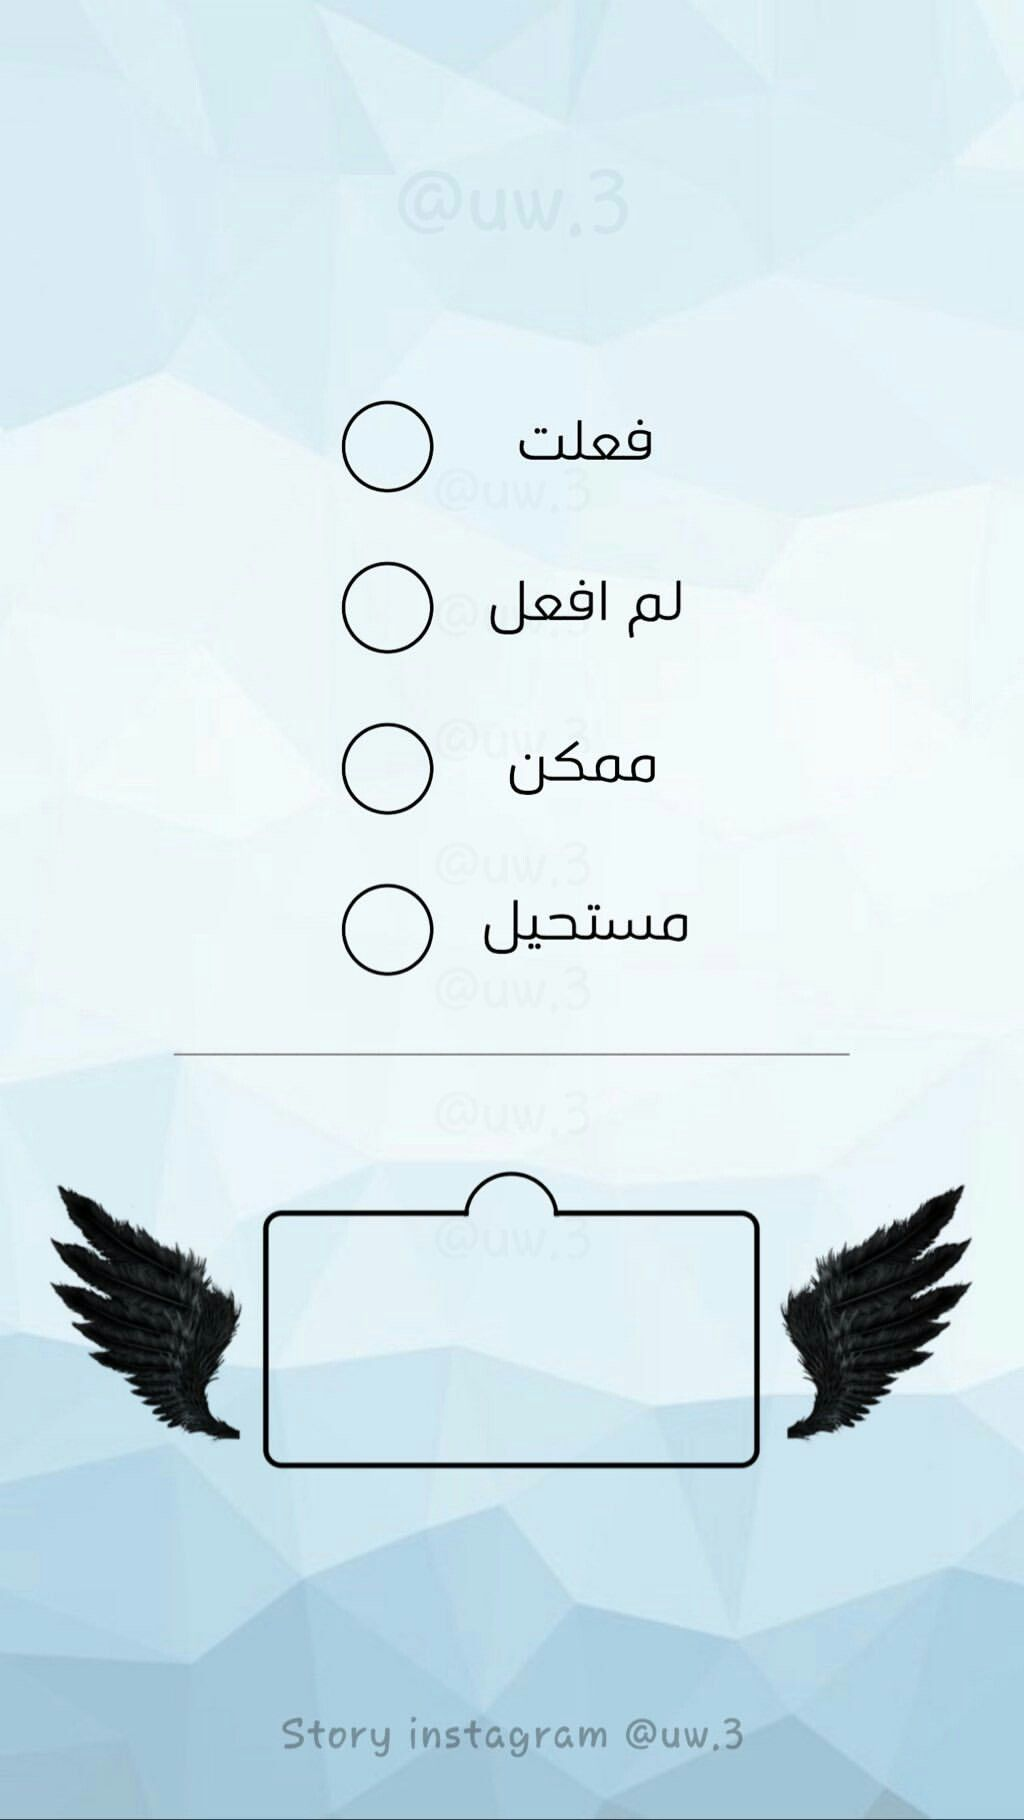 Pin By Zainab On فعاليات ستوري Instagram Story Questions Instagram Quotes Love Quotes Wallpaper